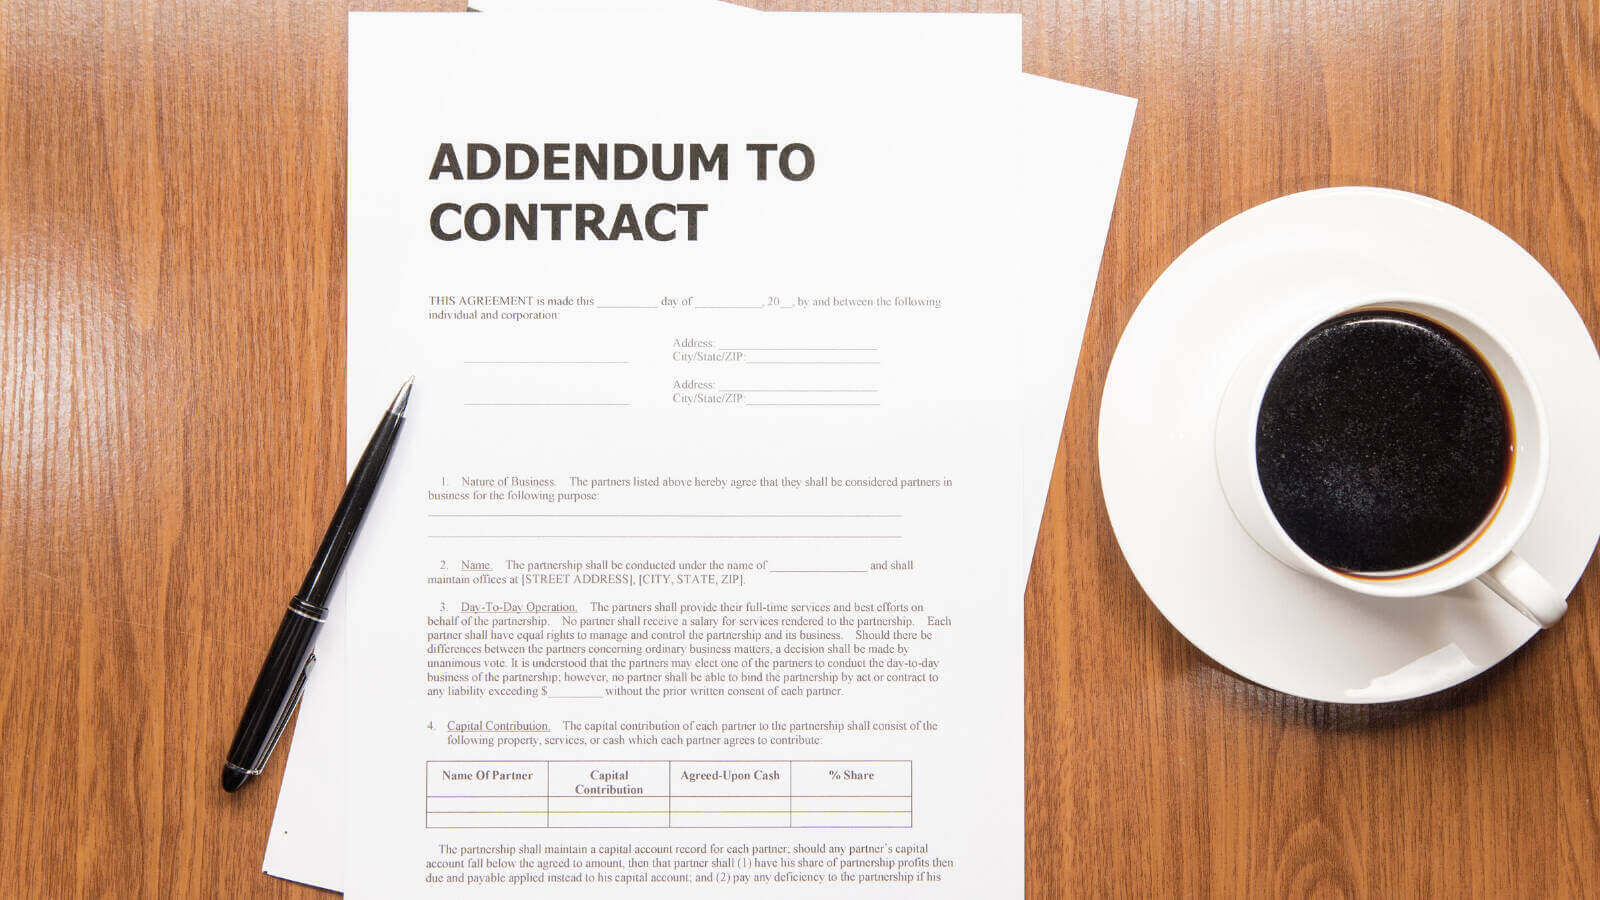 """On a wooden background, a couple sheets of white paper with the words """"ADDENDUM TO CONTRACT"""" at the top and an unreadable form below. A black pen sits atop the paper. A cup of black coffee on a saucer sits to the right."""